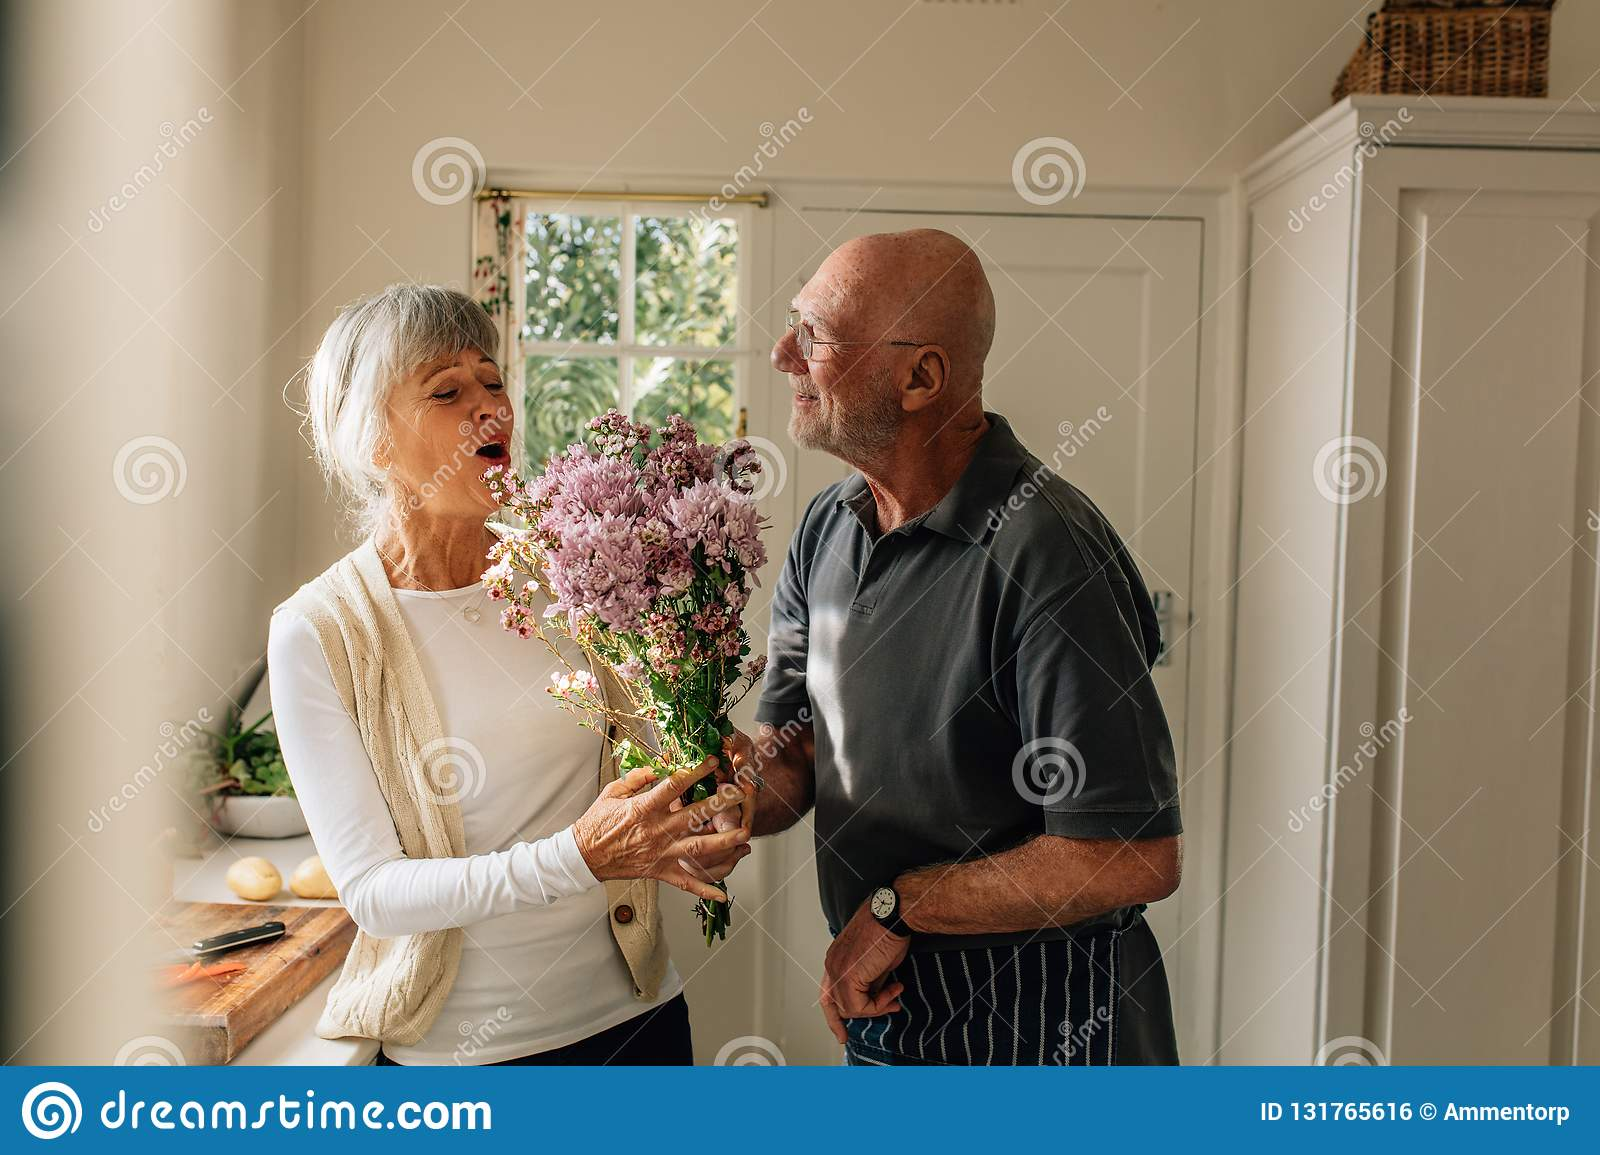 Man expressing his love for his wife giving her a bunch of flowers at home. Senior woman happy to see her husband give her a